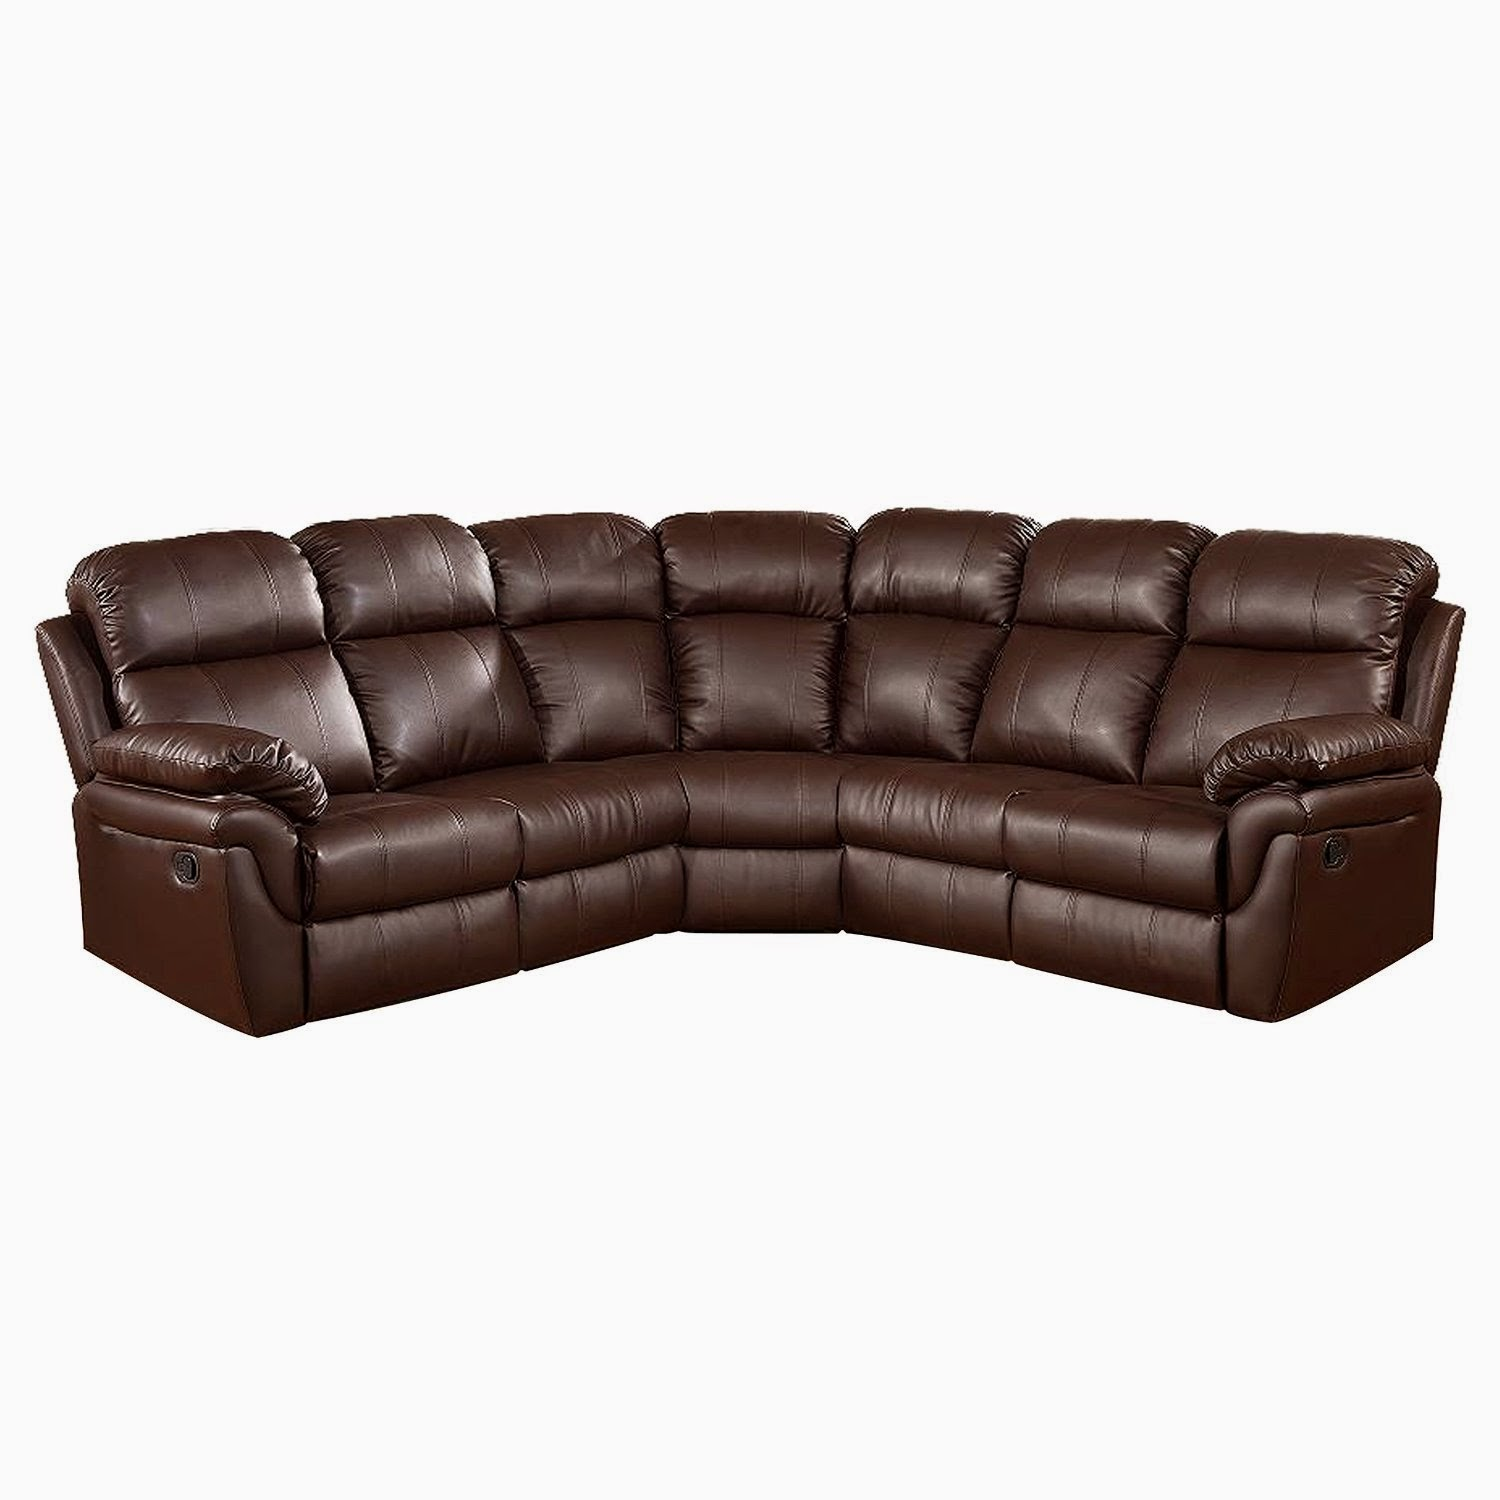 The Best Reclining Sofas Reviews Reclining Sectional Sofas